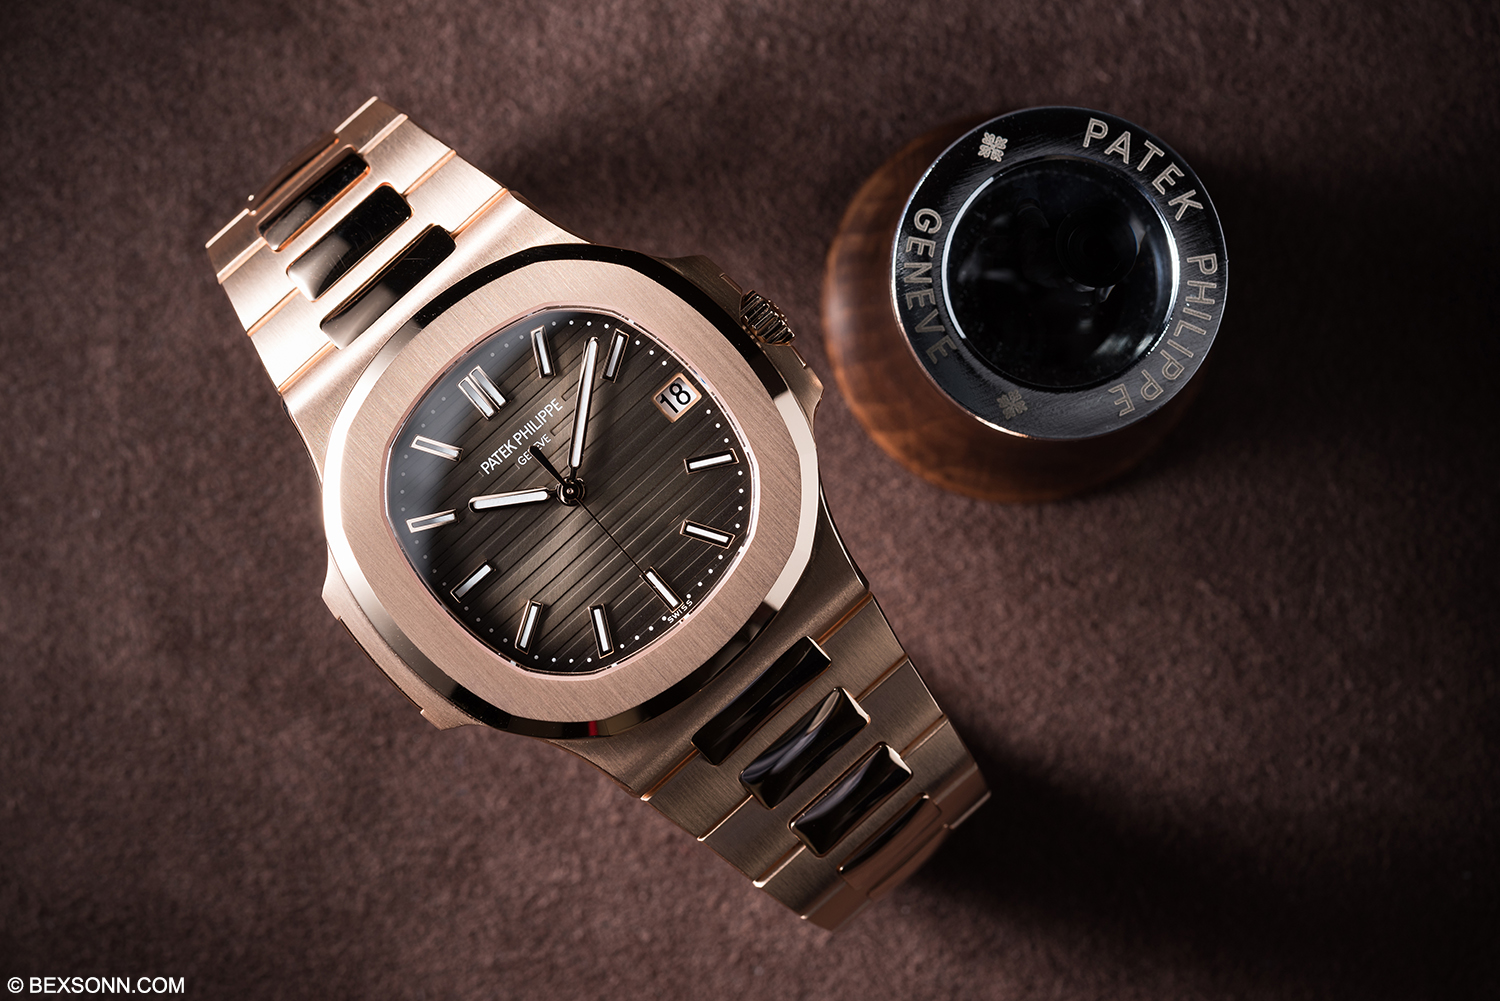 A hands on look at the new rose gold patek philippe nautilus reference 5711r bexsonn for Patek philippe nautilus